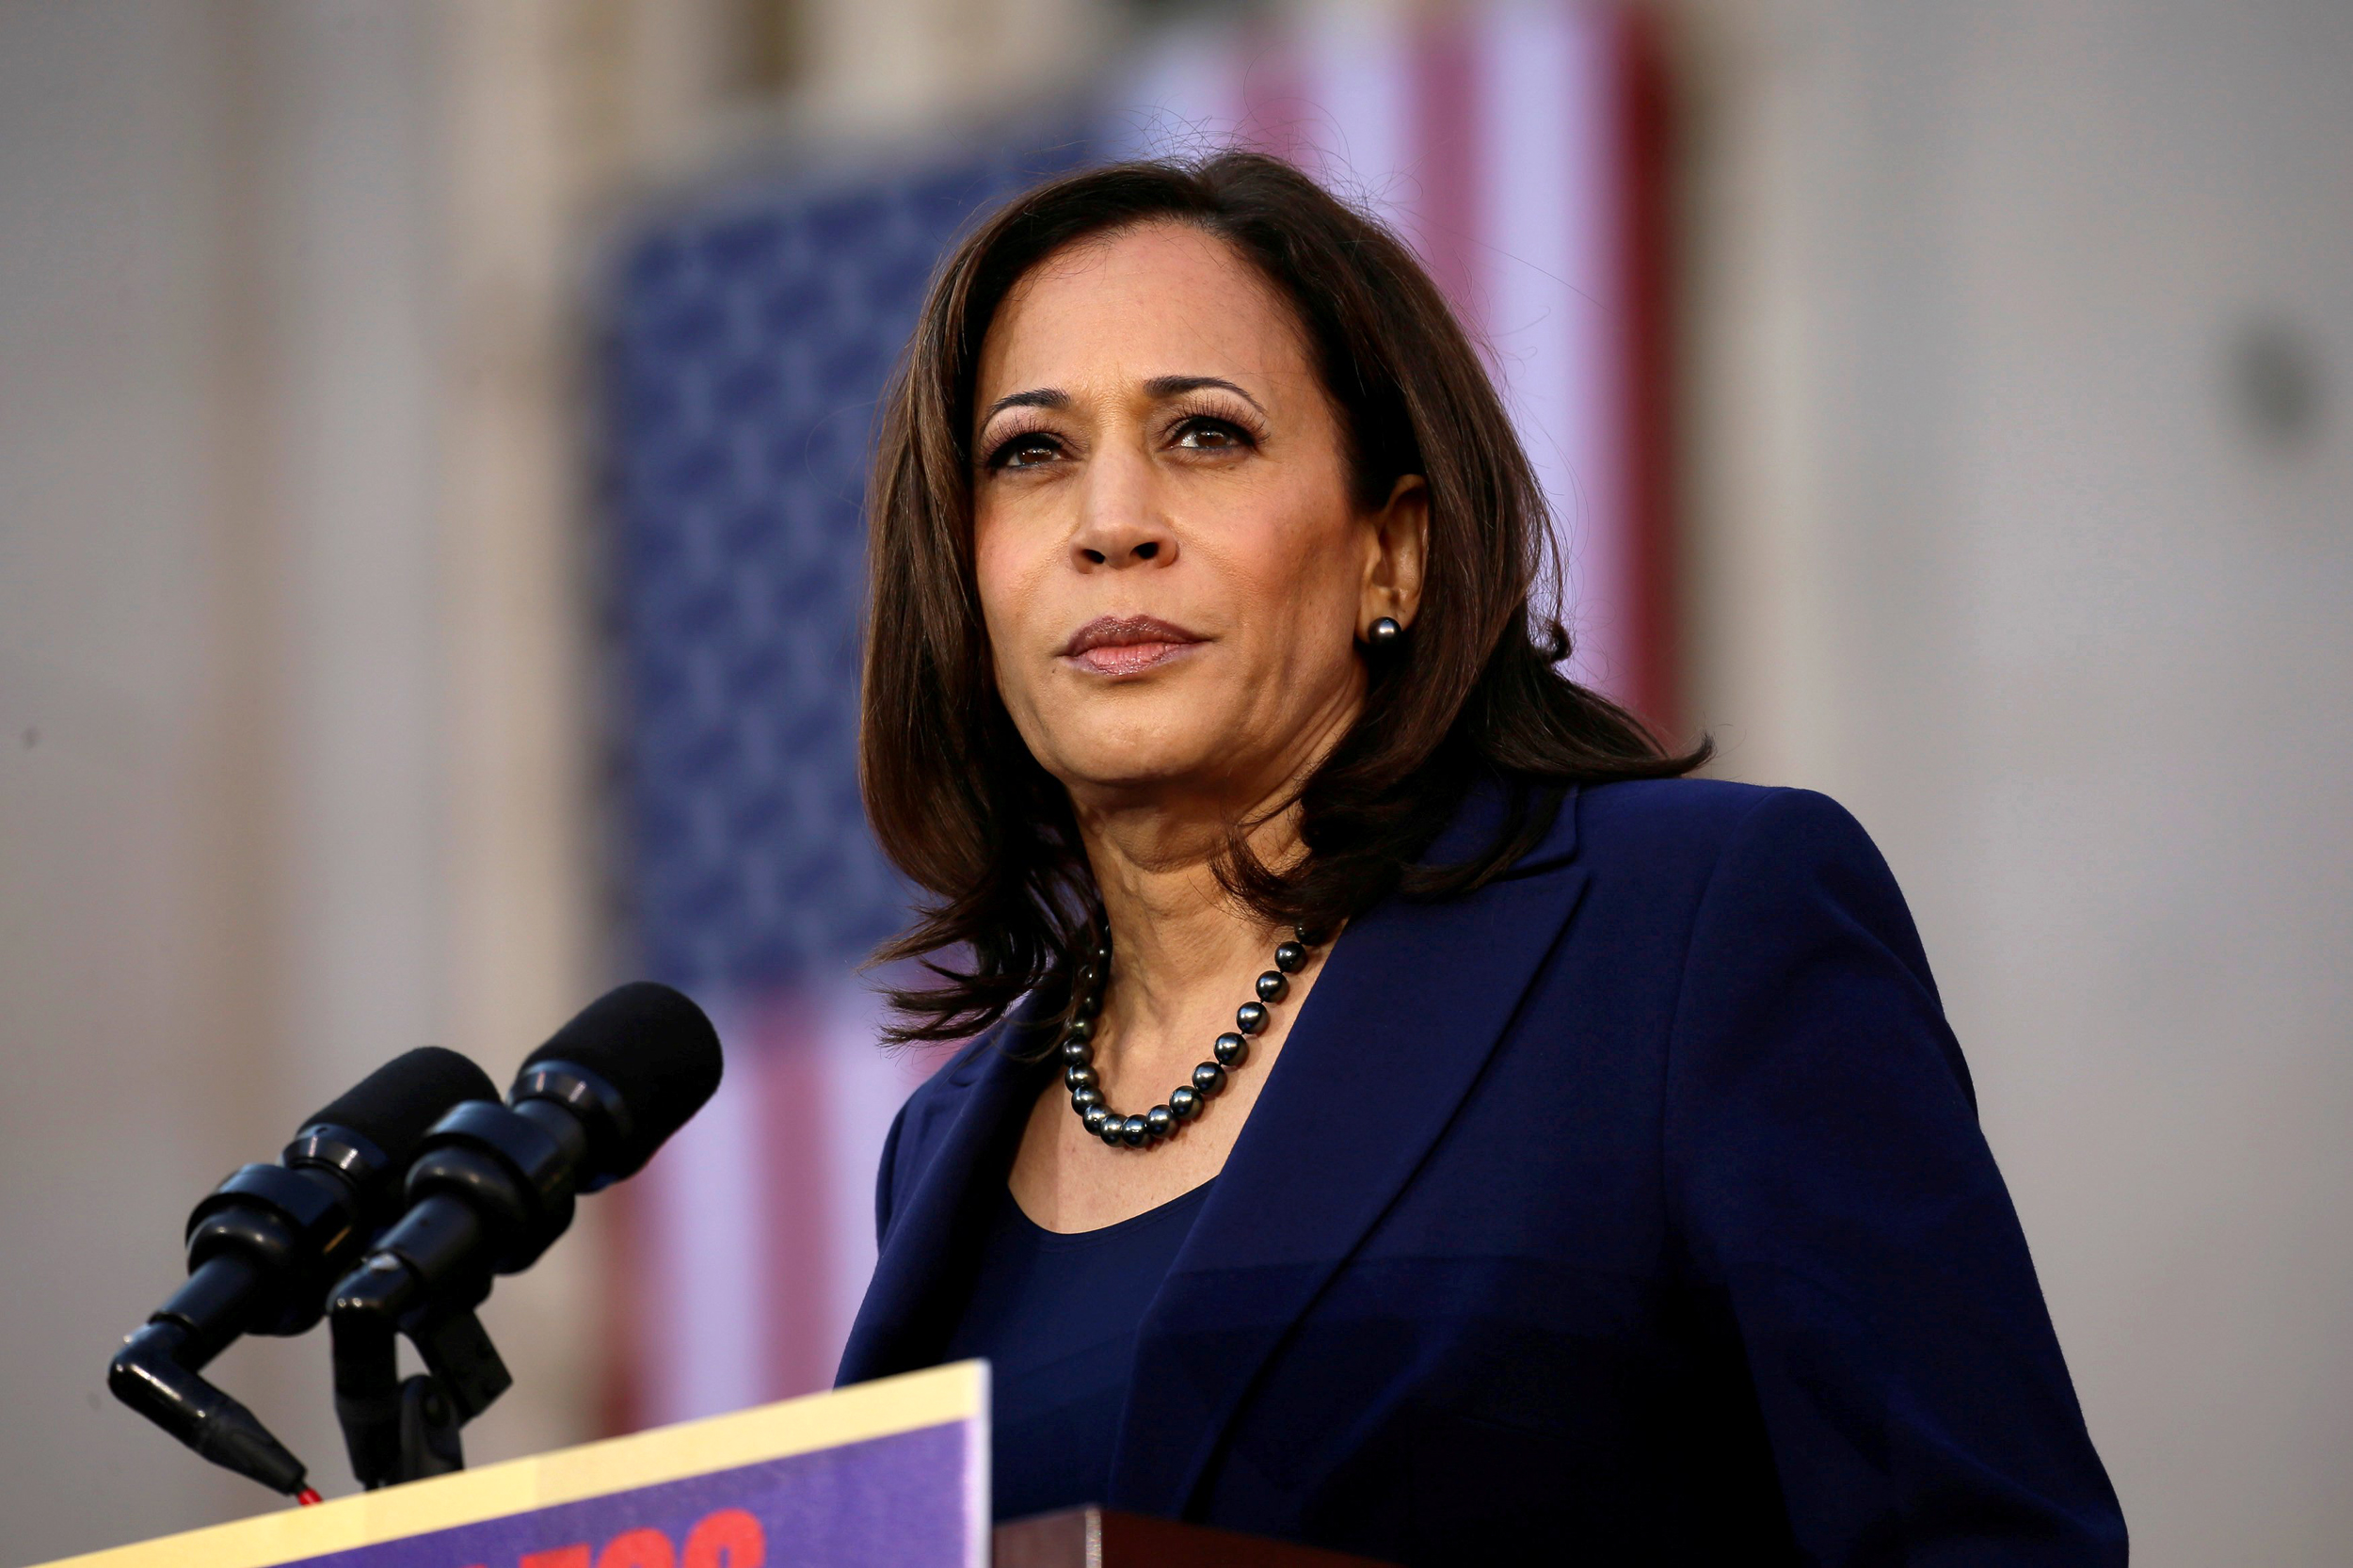 USA-ELECTION/HARRIS